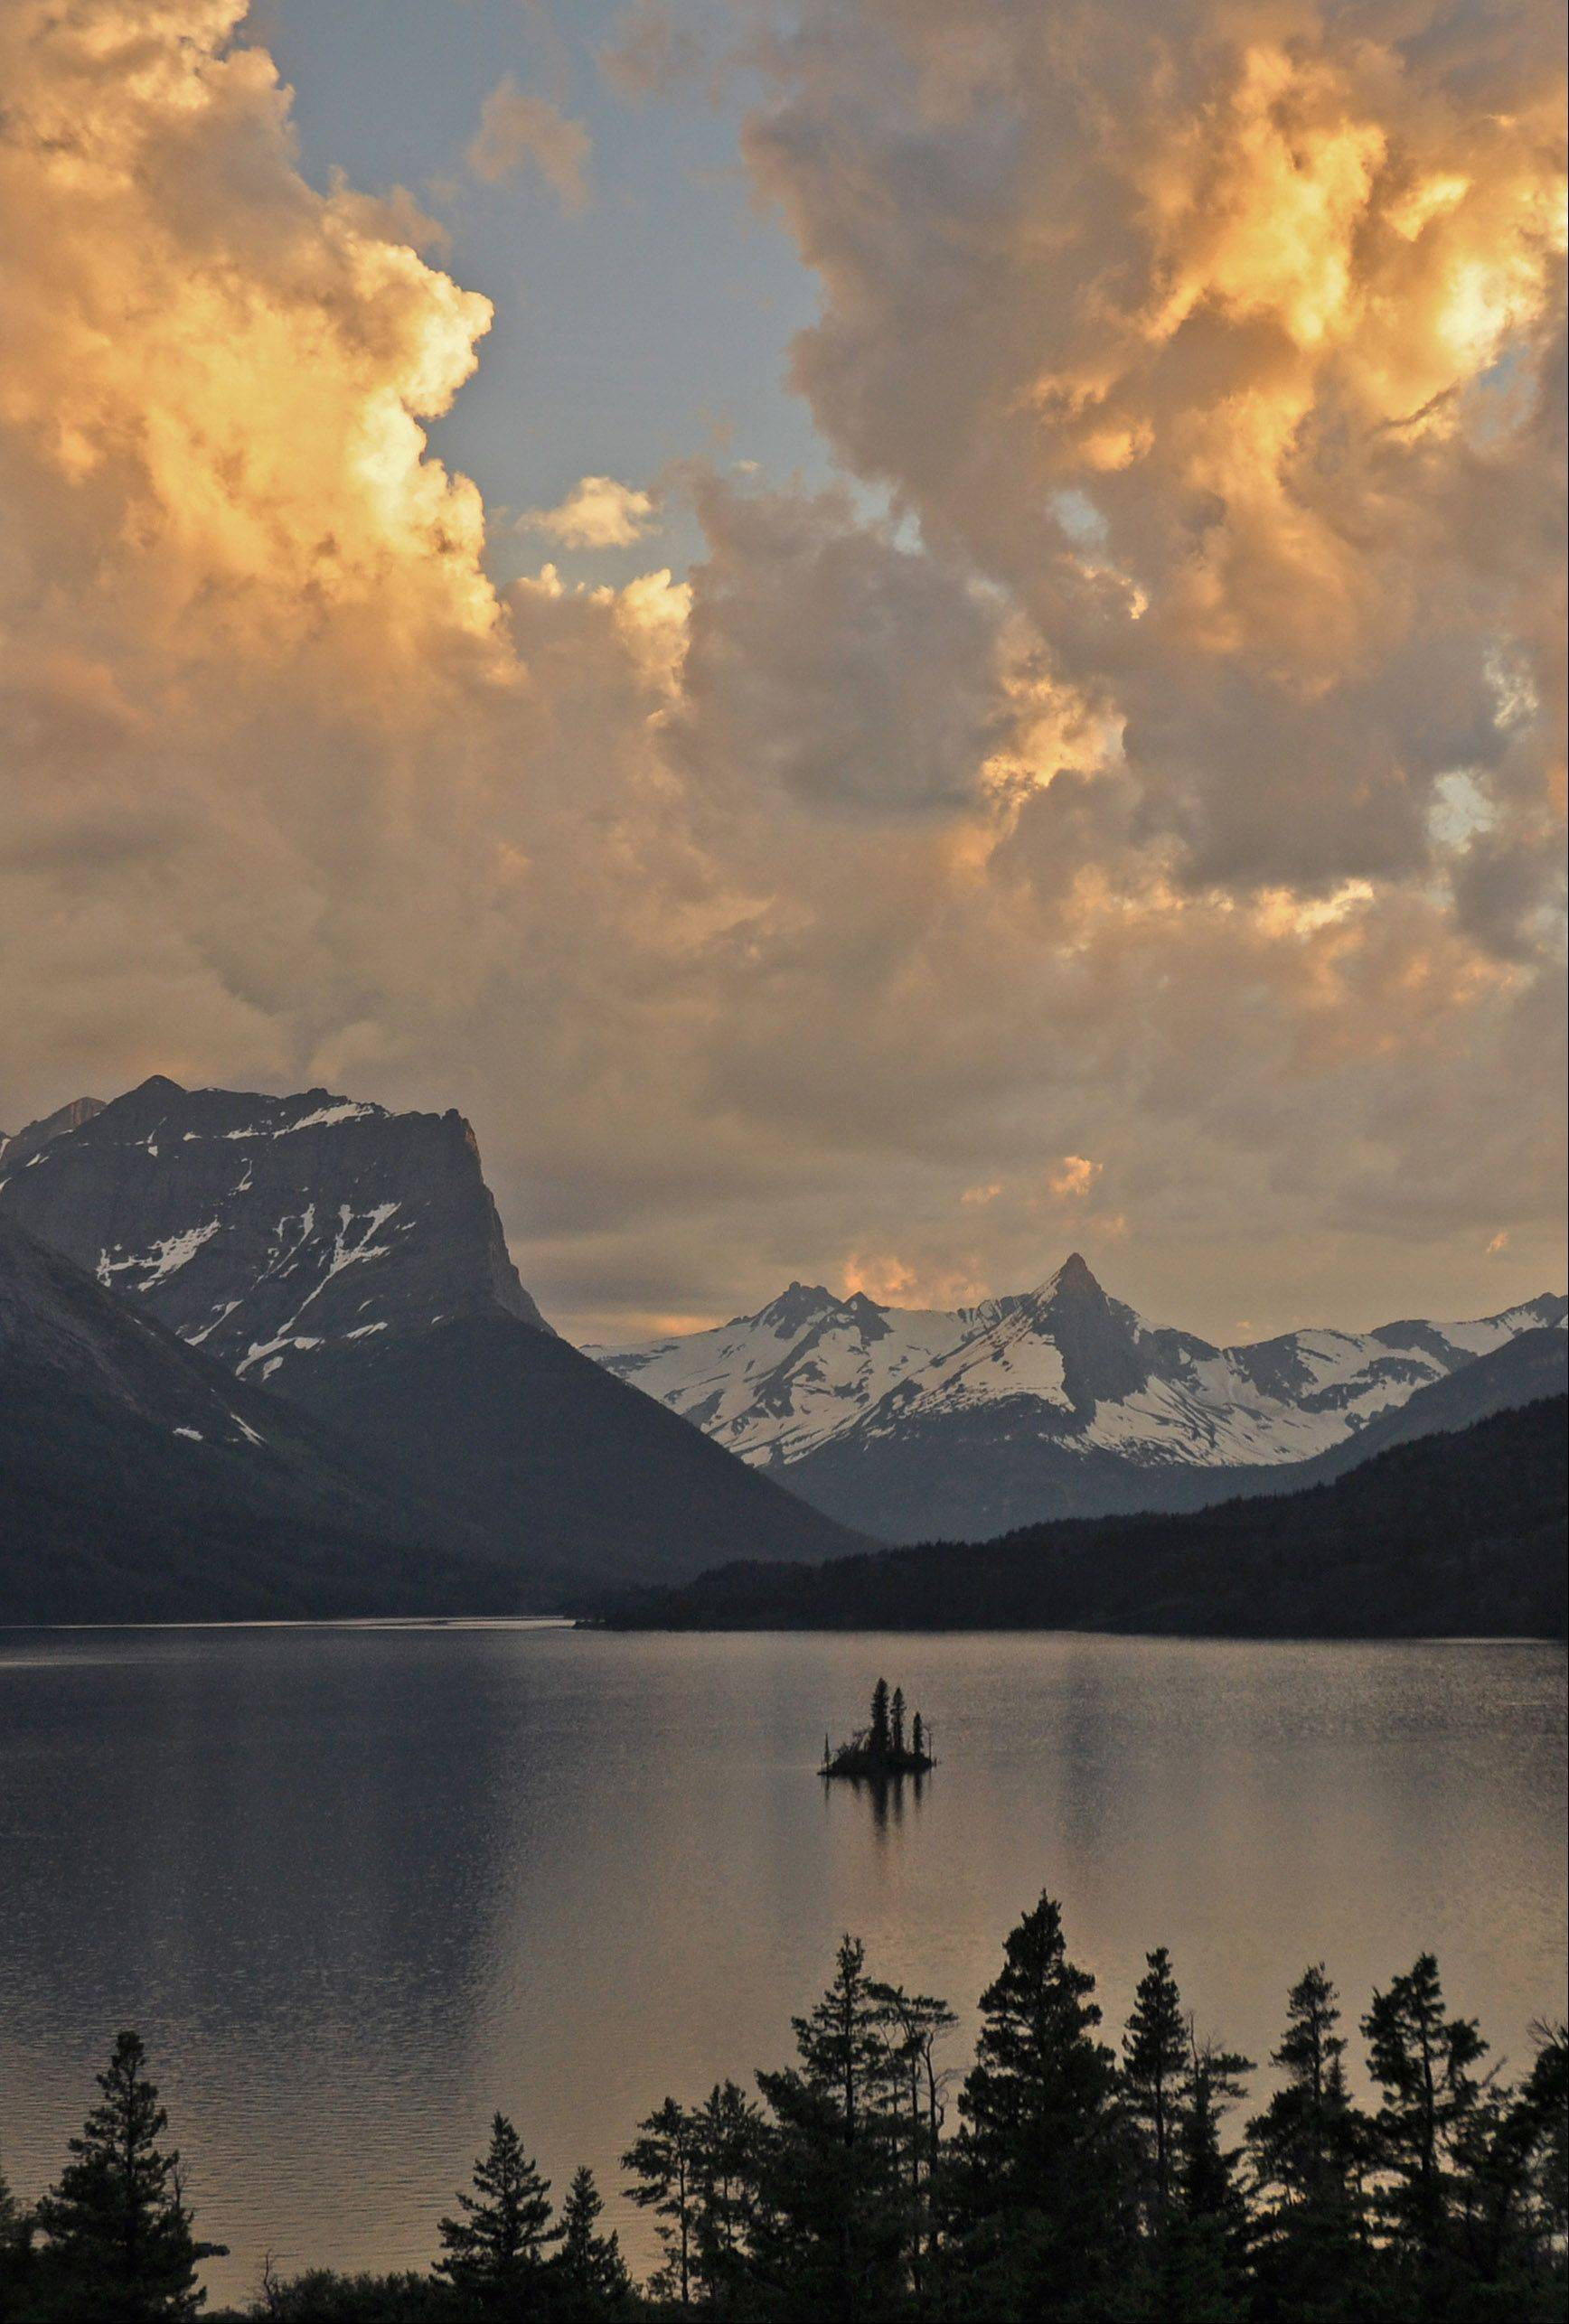 In Montana's Glacier National Park, dusk settles over St. Mary Lake and tiny Wild Goose Island. The last rays of sunset light up huge clouds forming over the park's glacier-carved mountains.